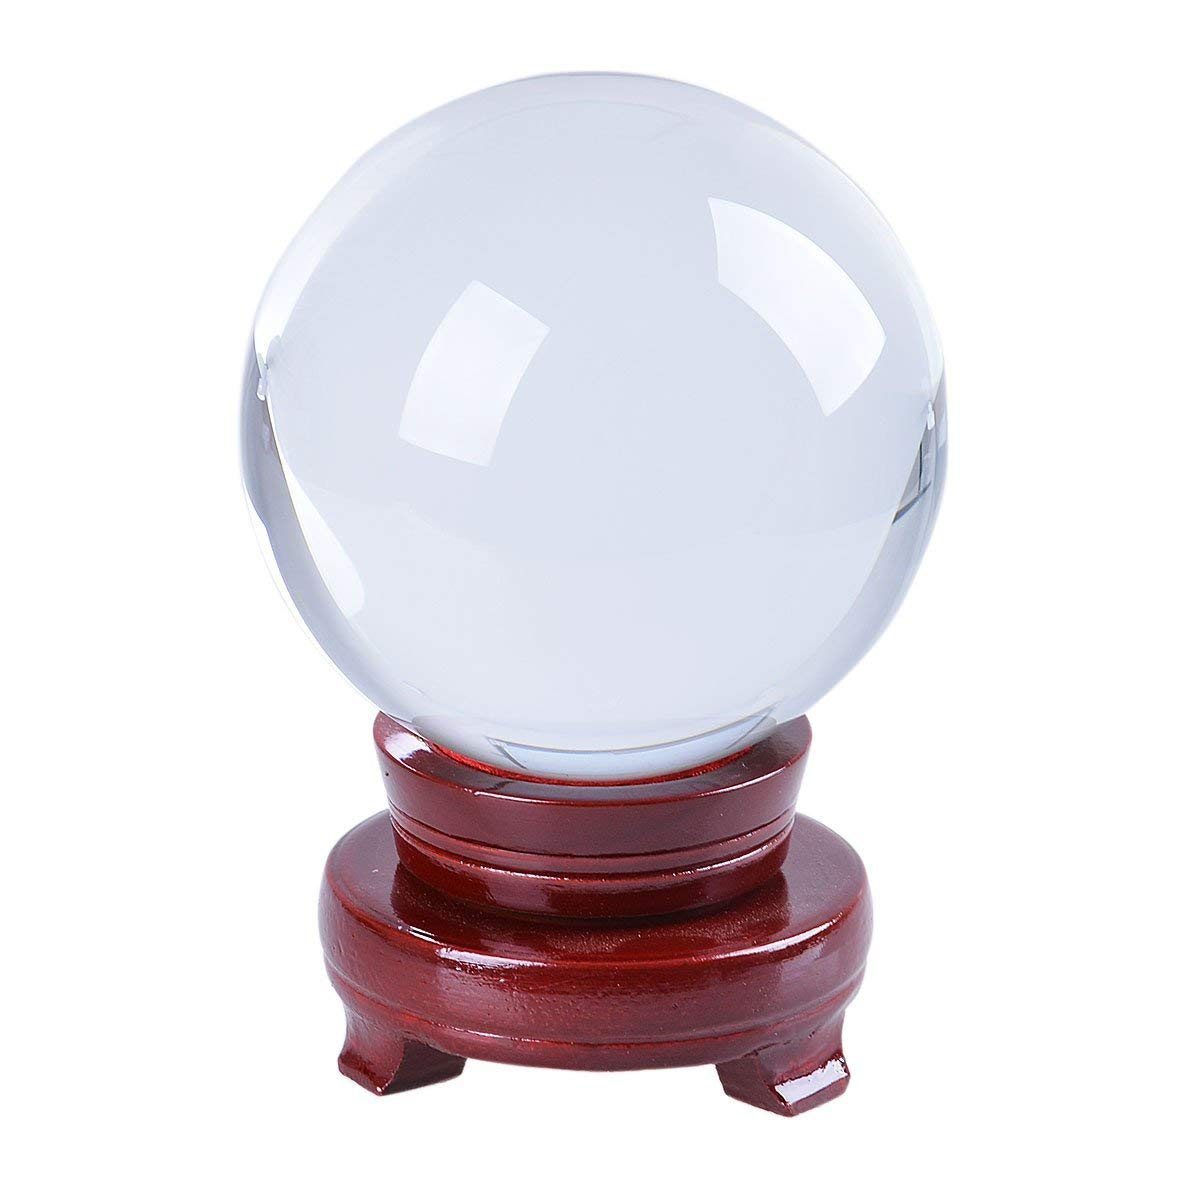 LONGWIN 120mm (4.7 inch) Large Crystal Divination Ball Photography Props Free Wooden Stand